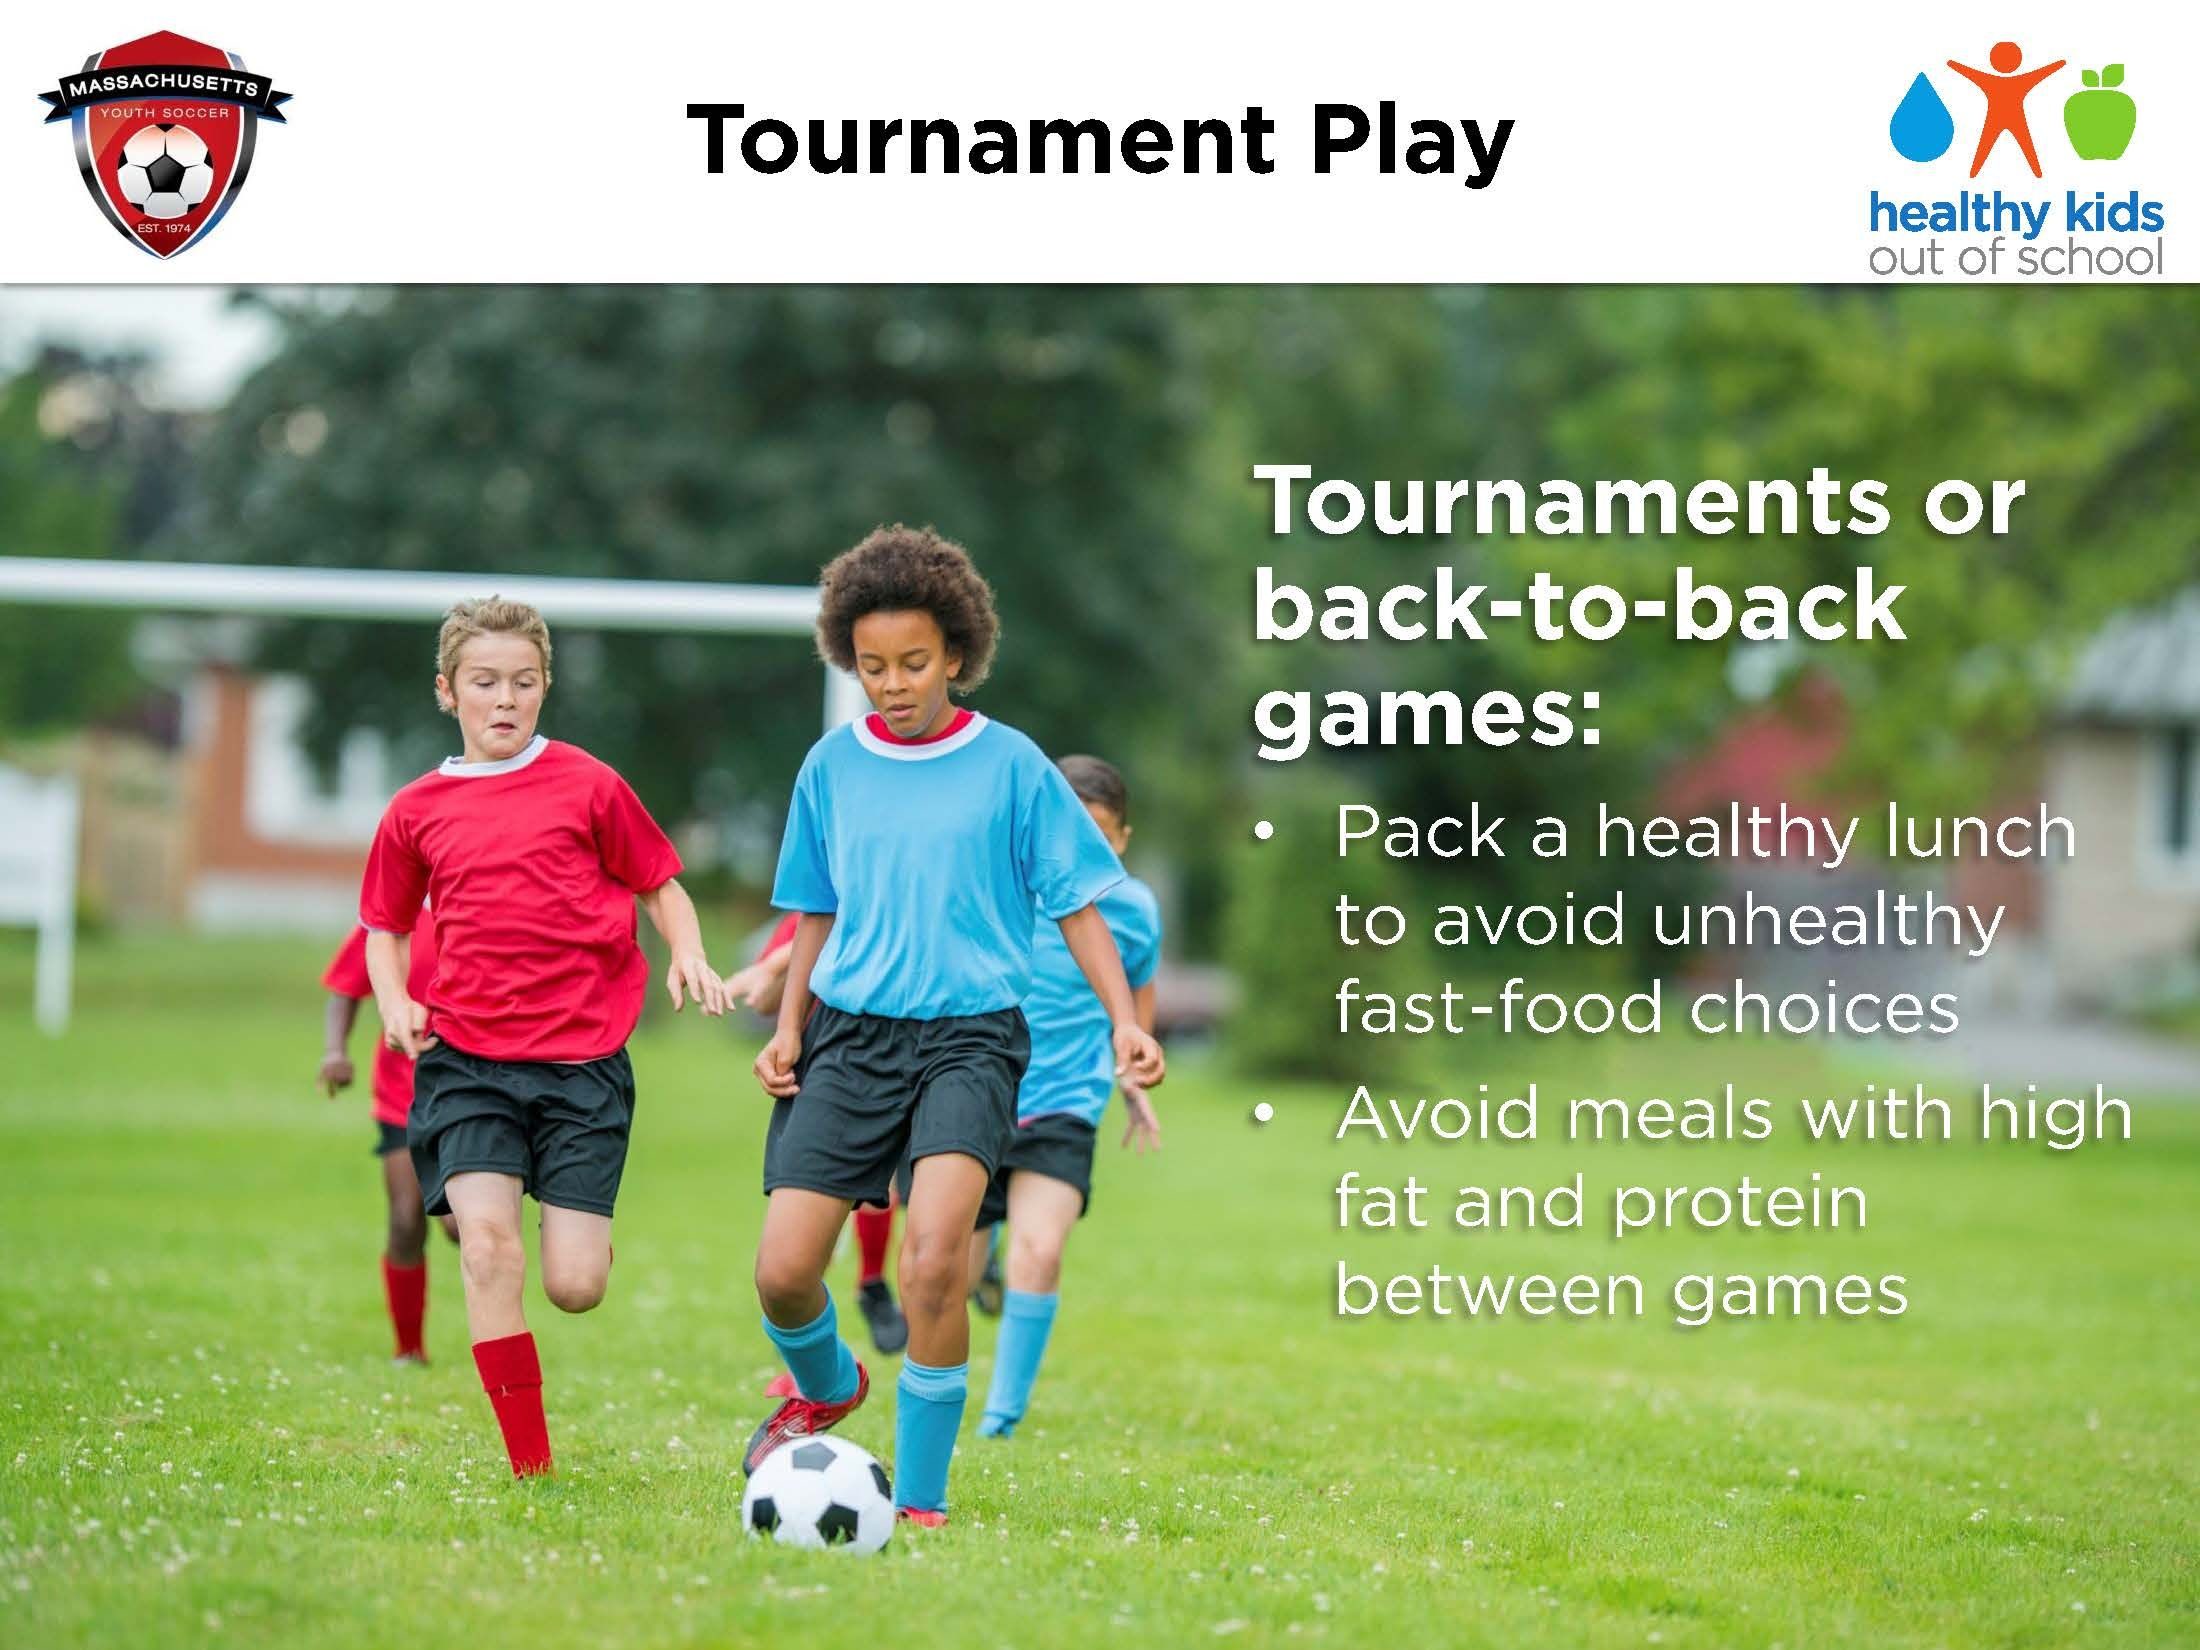 Tournament Play Soccer Coaching Healthy Kids Tournaments